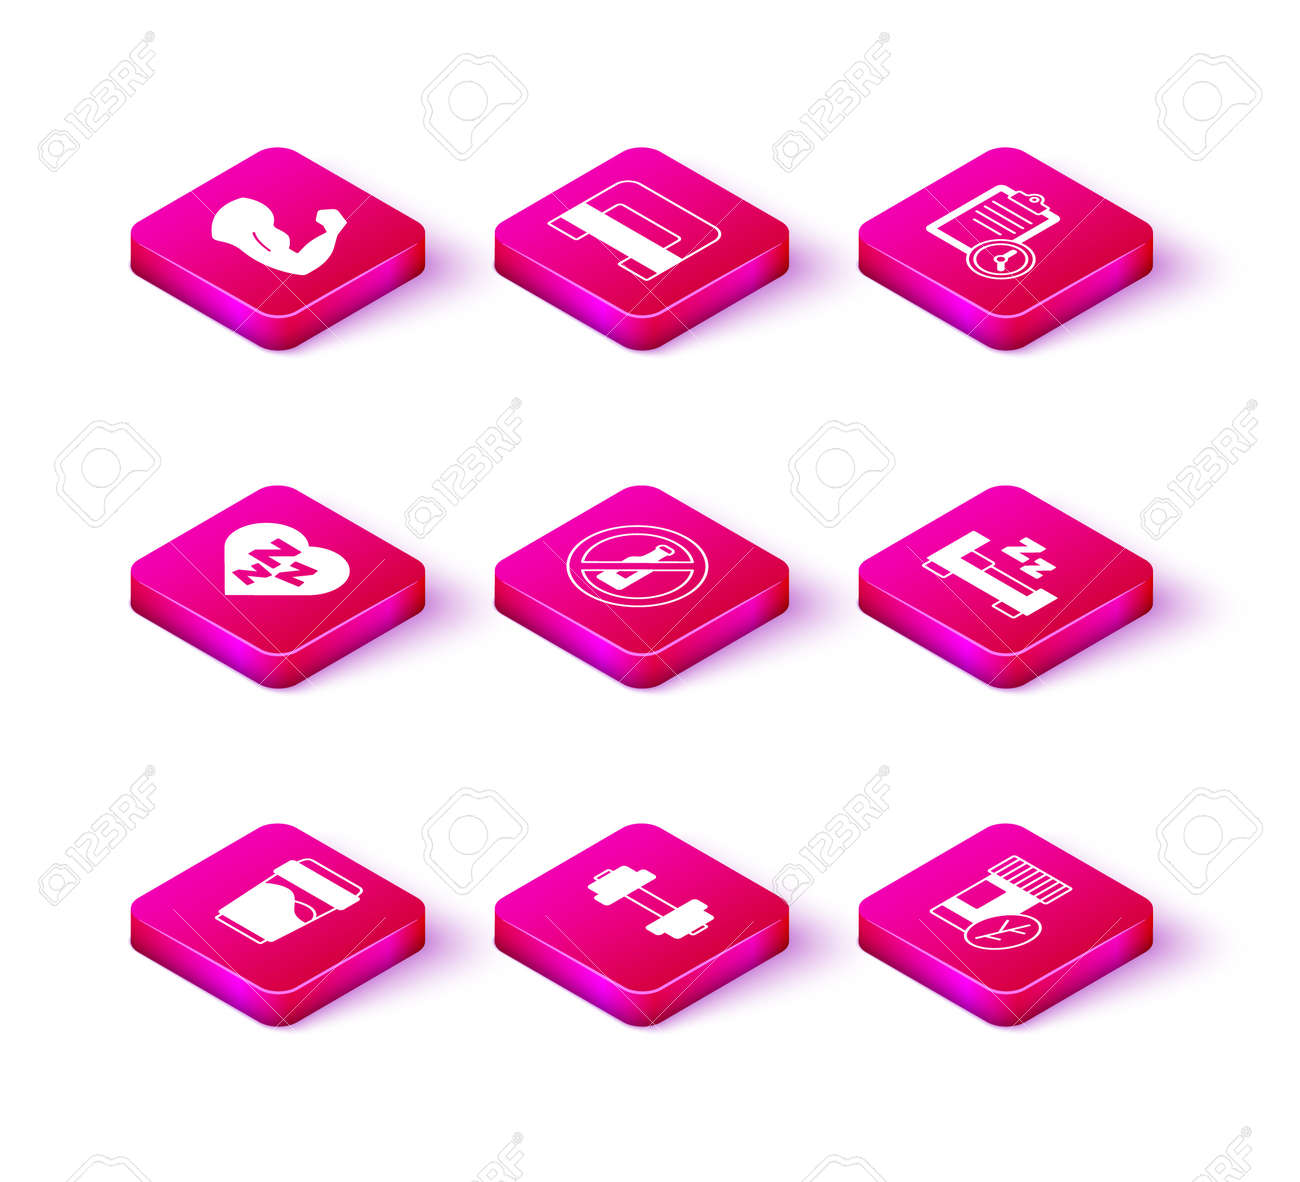 Set Glass with water, Dumbbell, Sleepy, No alcohol, Vitamin pill, Time to sleep, Sport training program and Big bed icon. Vector - 173396162